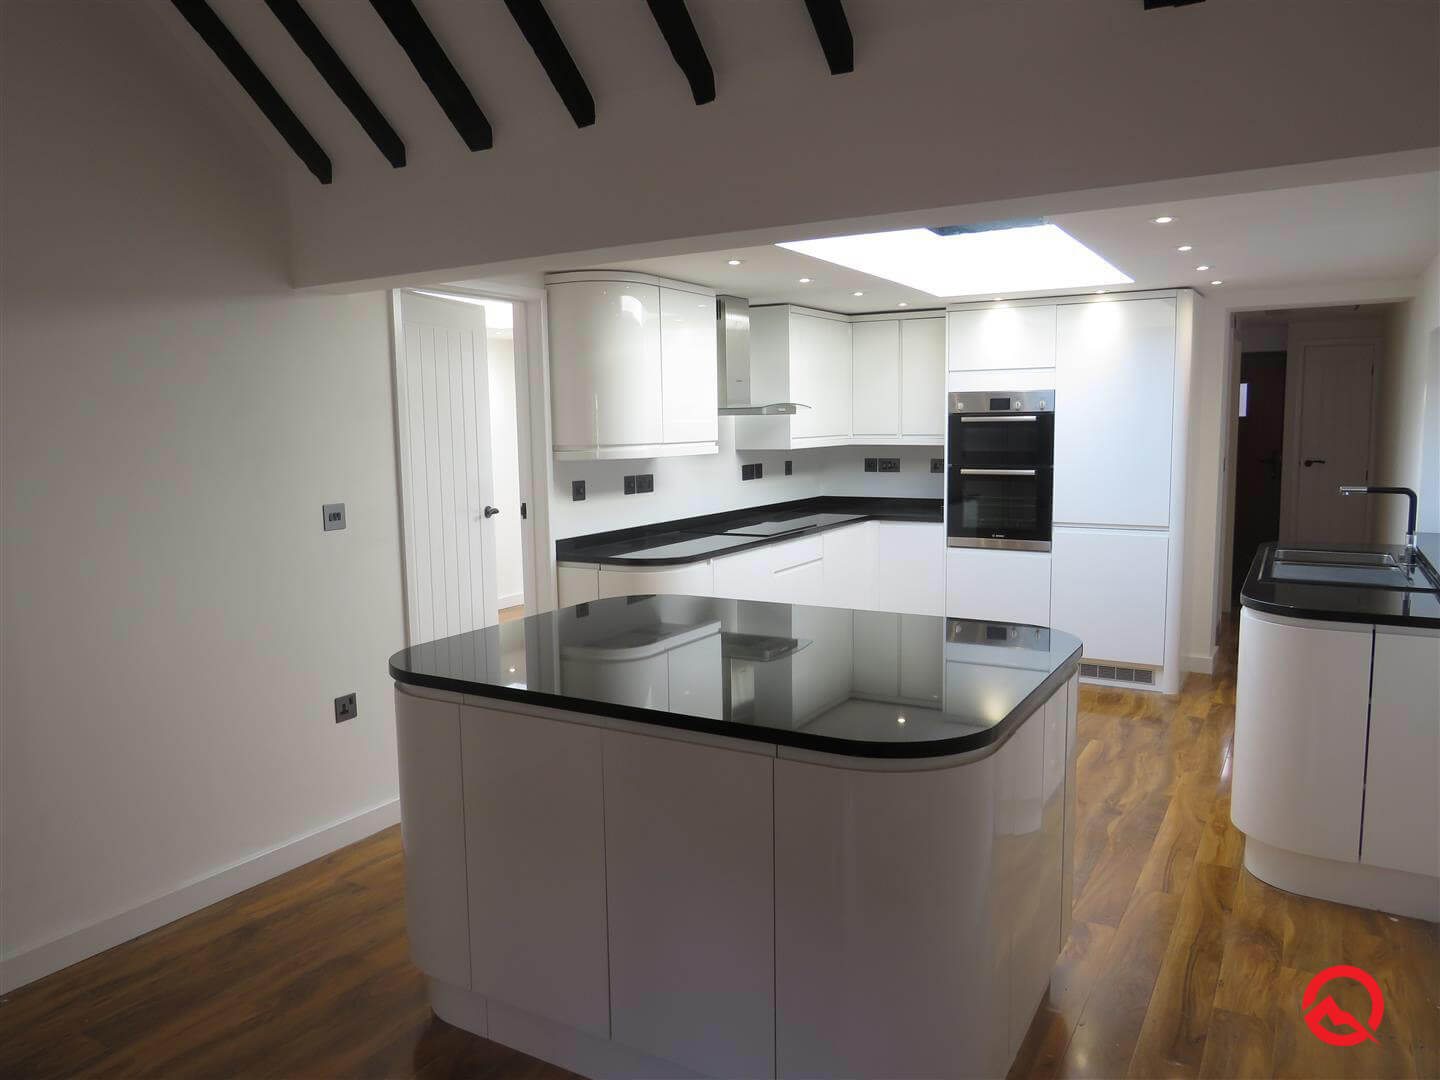 "granite quartz worktops <a href=""https://www.gqworktops.com/granite-quartz-worktops-liverpool/"">Liverpool</a>"